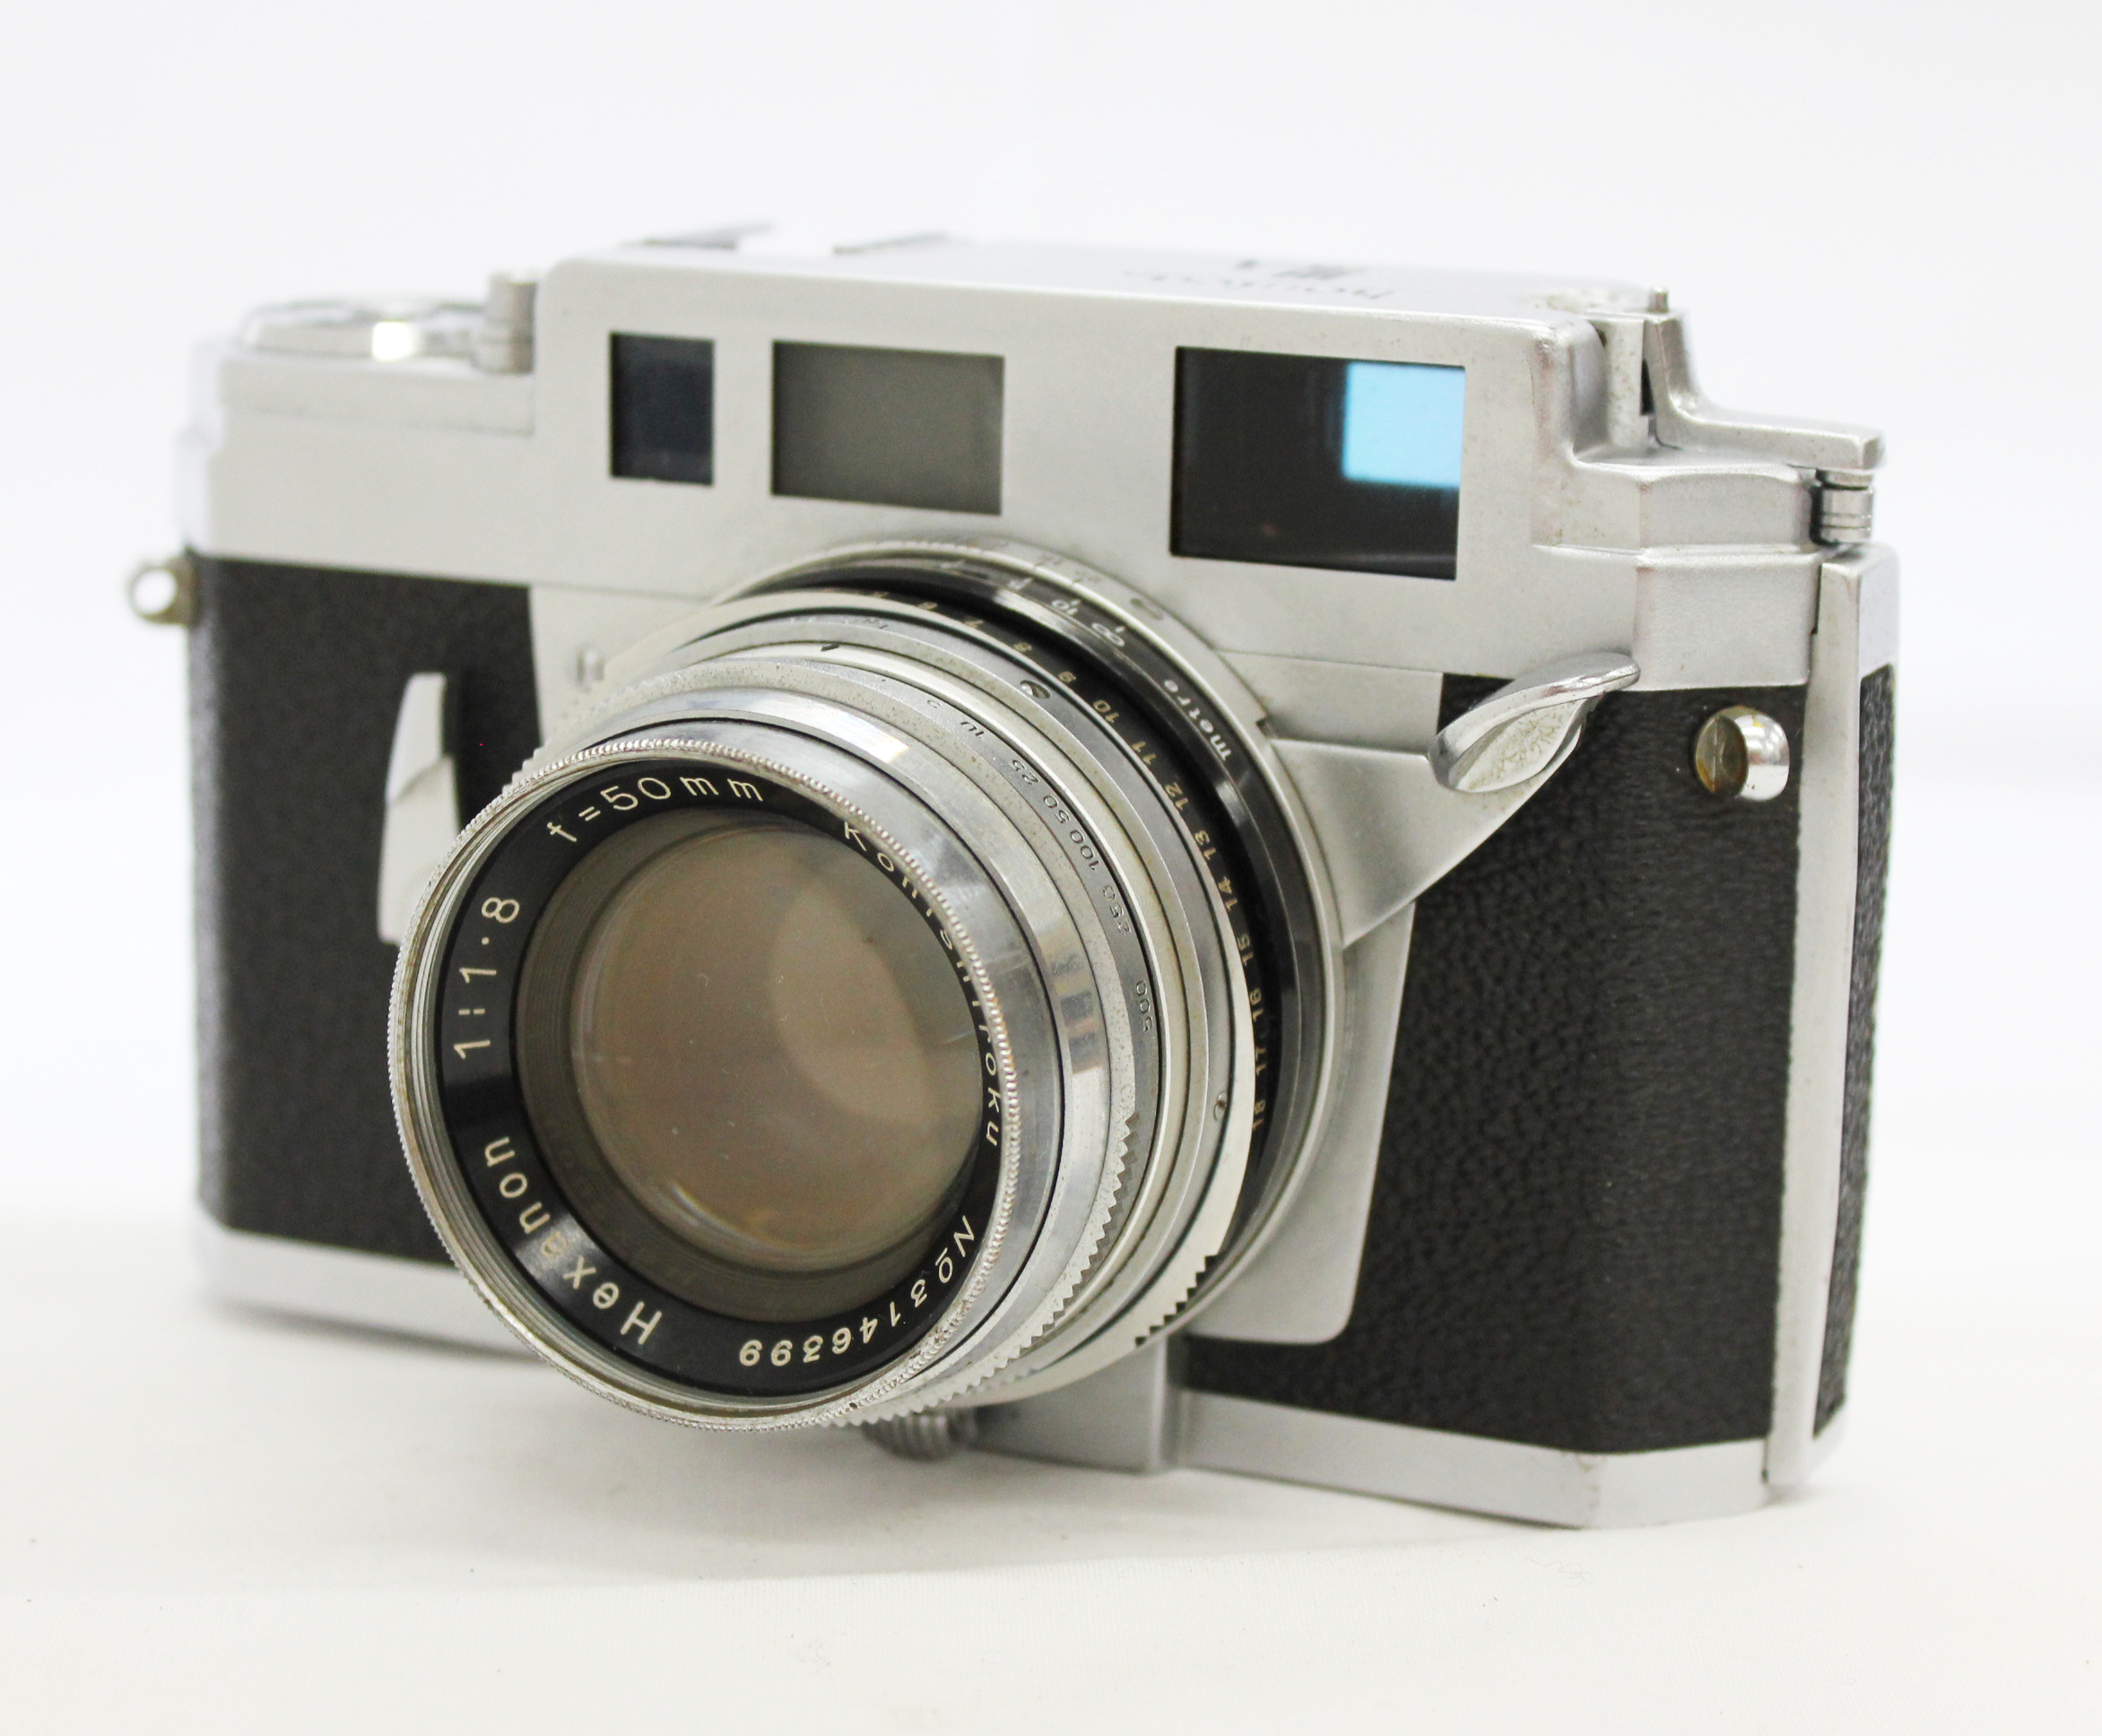 Japan Used Camera Shop | [Excellent+++] Konica III A 35mm Rangefinder Film Camera w/ 50mm F1.8 Lens from Japan